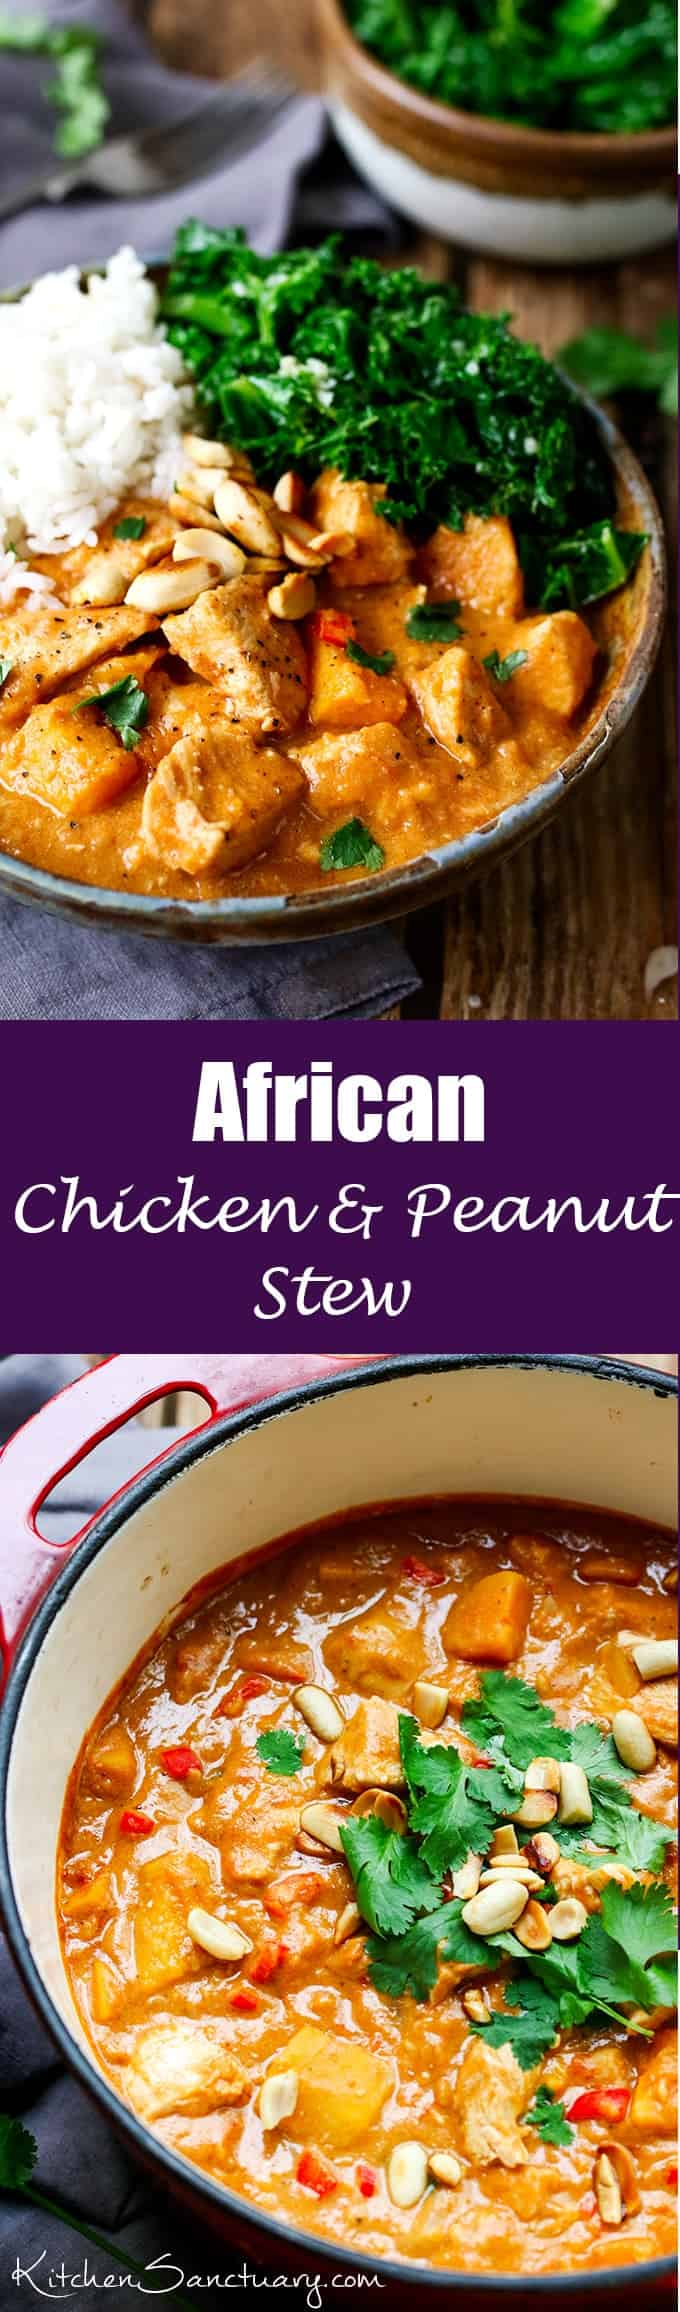 African Chicken & Peanut Stew. A slightly spicy, chicken and peanut stew that can be eaten on its own, or with rice. #African #Recipe #Stew #Homemade